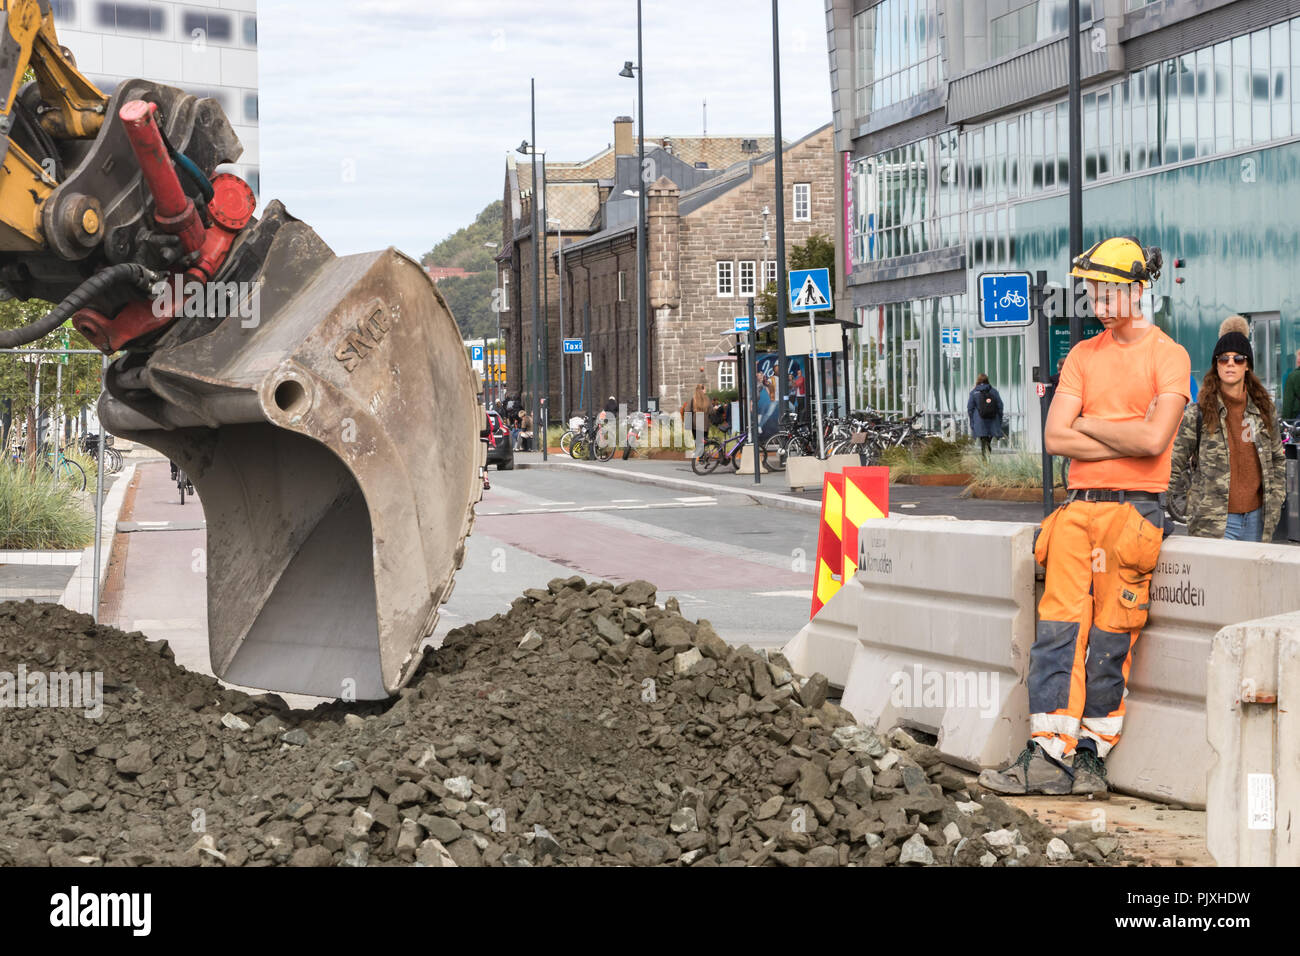 Trondheim, Norway - August 28th, 2018: A young construction worker standing watching an excavator machine at Brattorkaia St, wearing a helmet and a ra - Stock Image